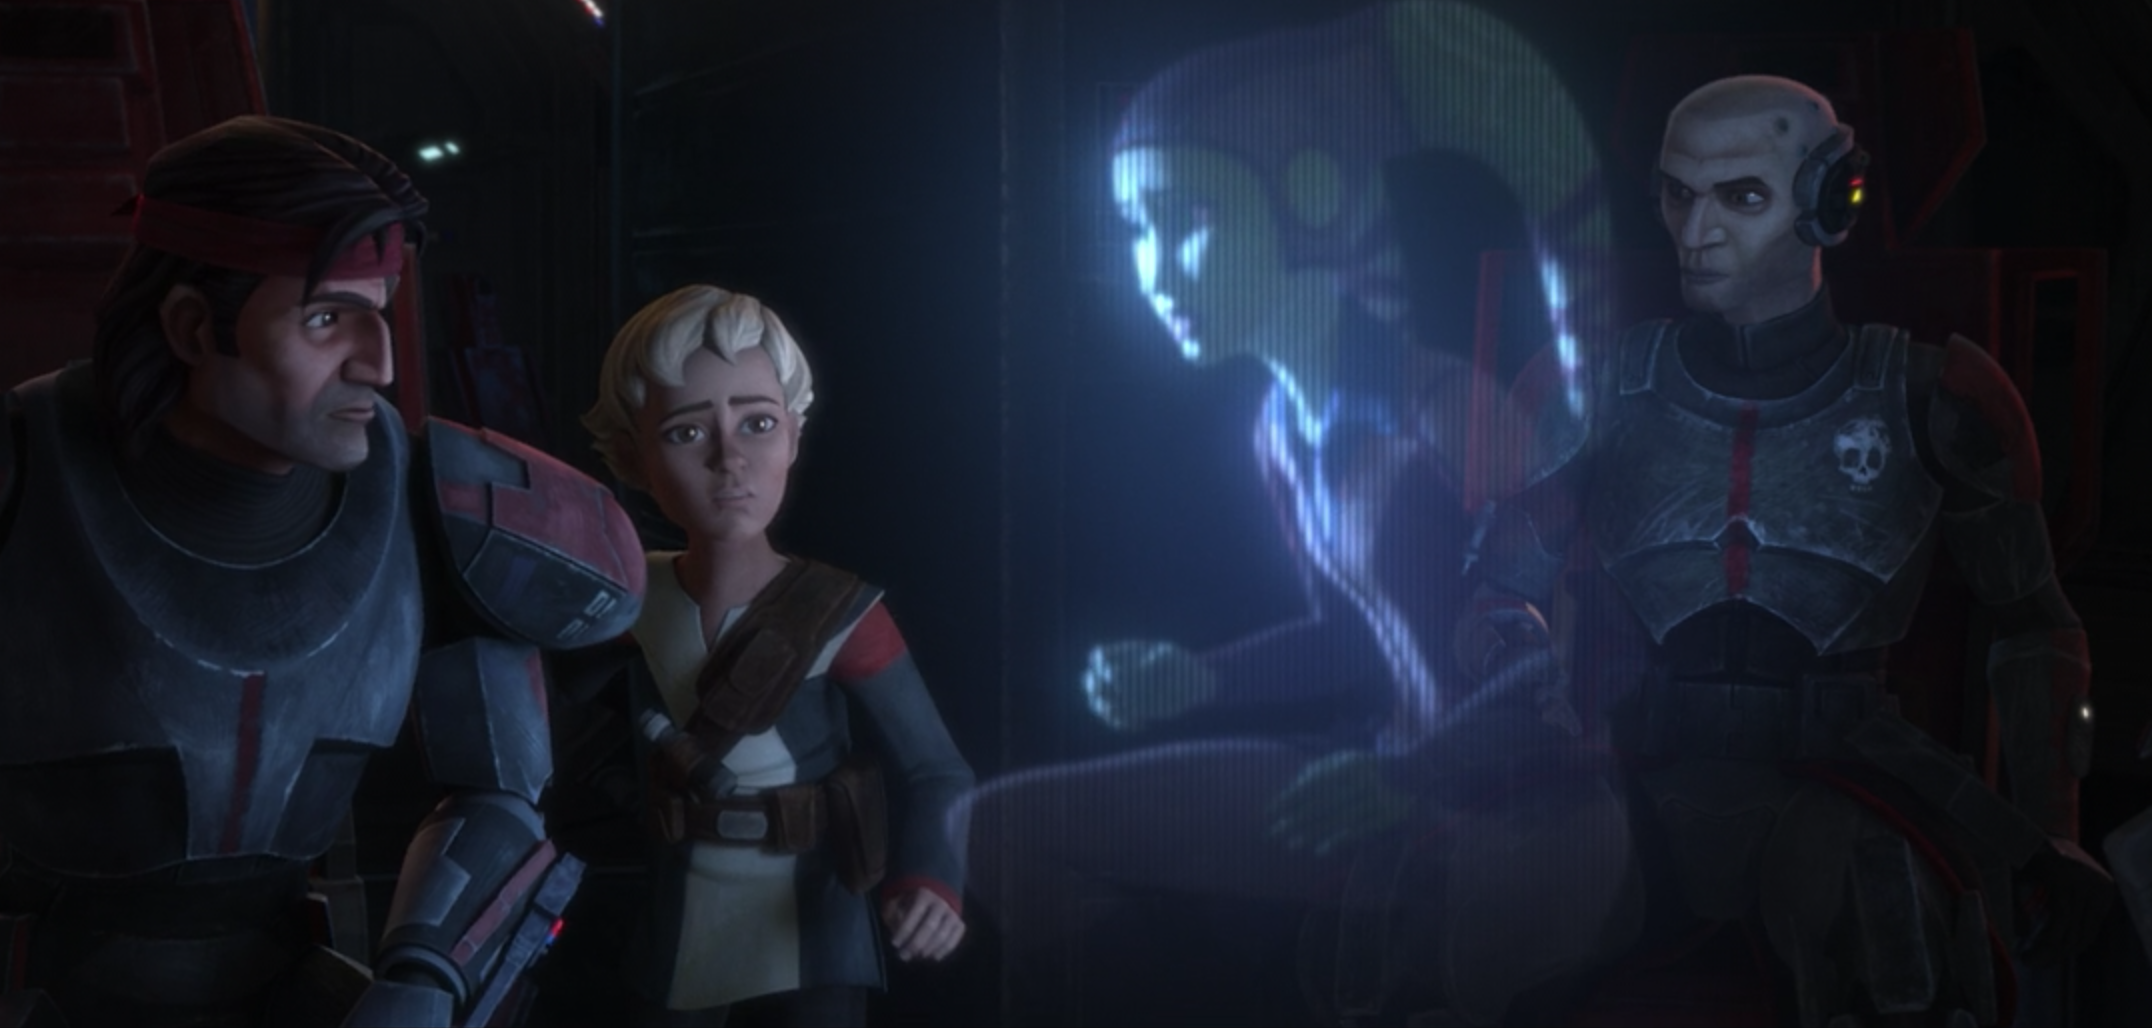 Hunter, Omega, Hera and Echo in The Bad Batch